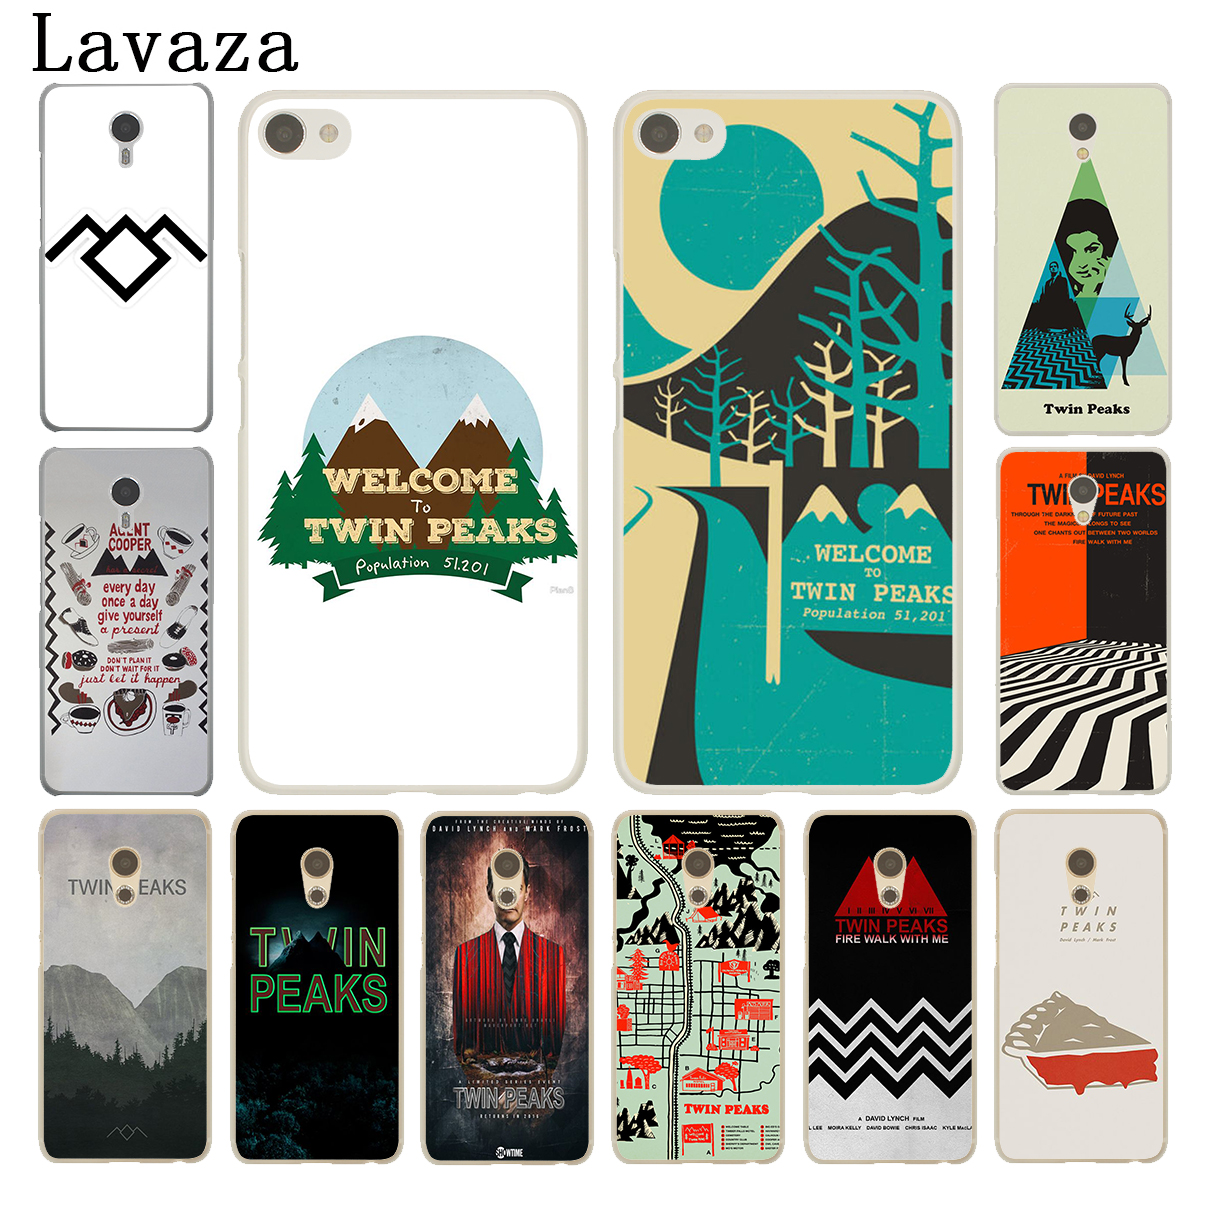 Lavaza Welcome To Twin Peaks Hard Case for Meizu M6 M5 M5C M5S M2 M3 M3S Mini Note U10 U20 Pro 6 7 Plus Cover